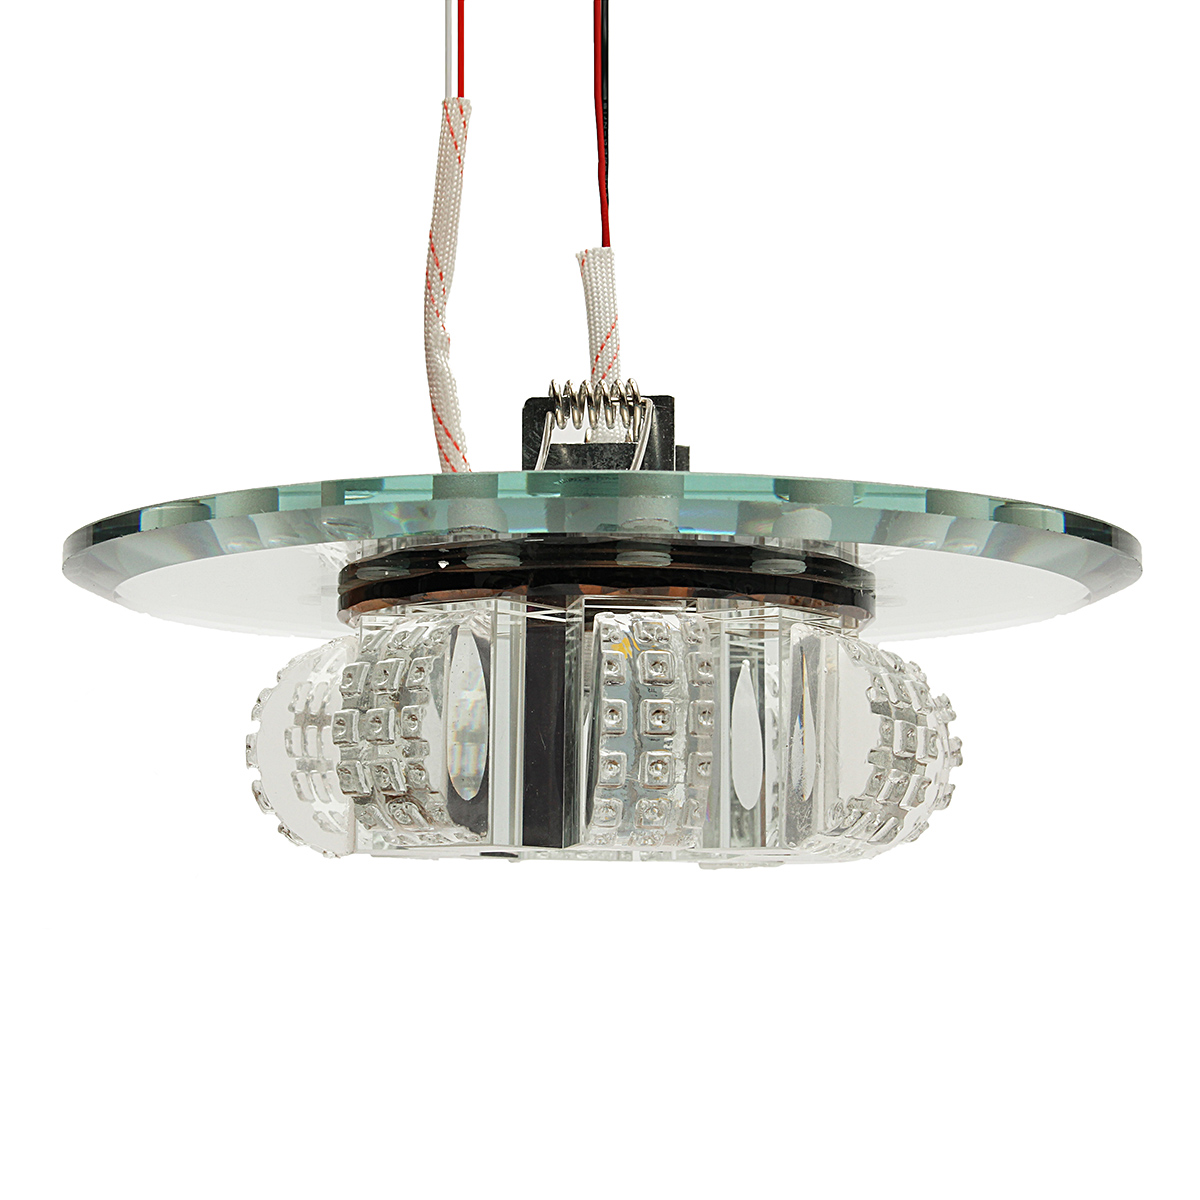 v flush fixtures top info w nickel housing ghany brush dimmable led mount inch light lens ceiling audacious acrylic